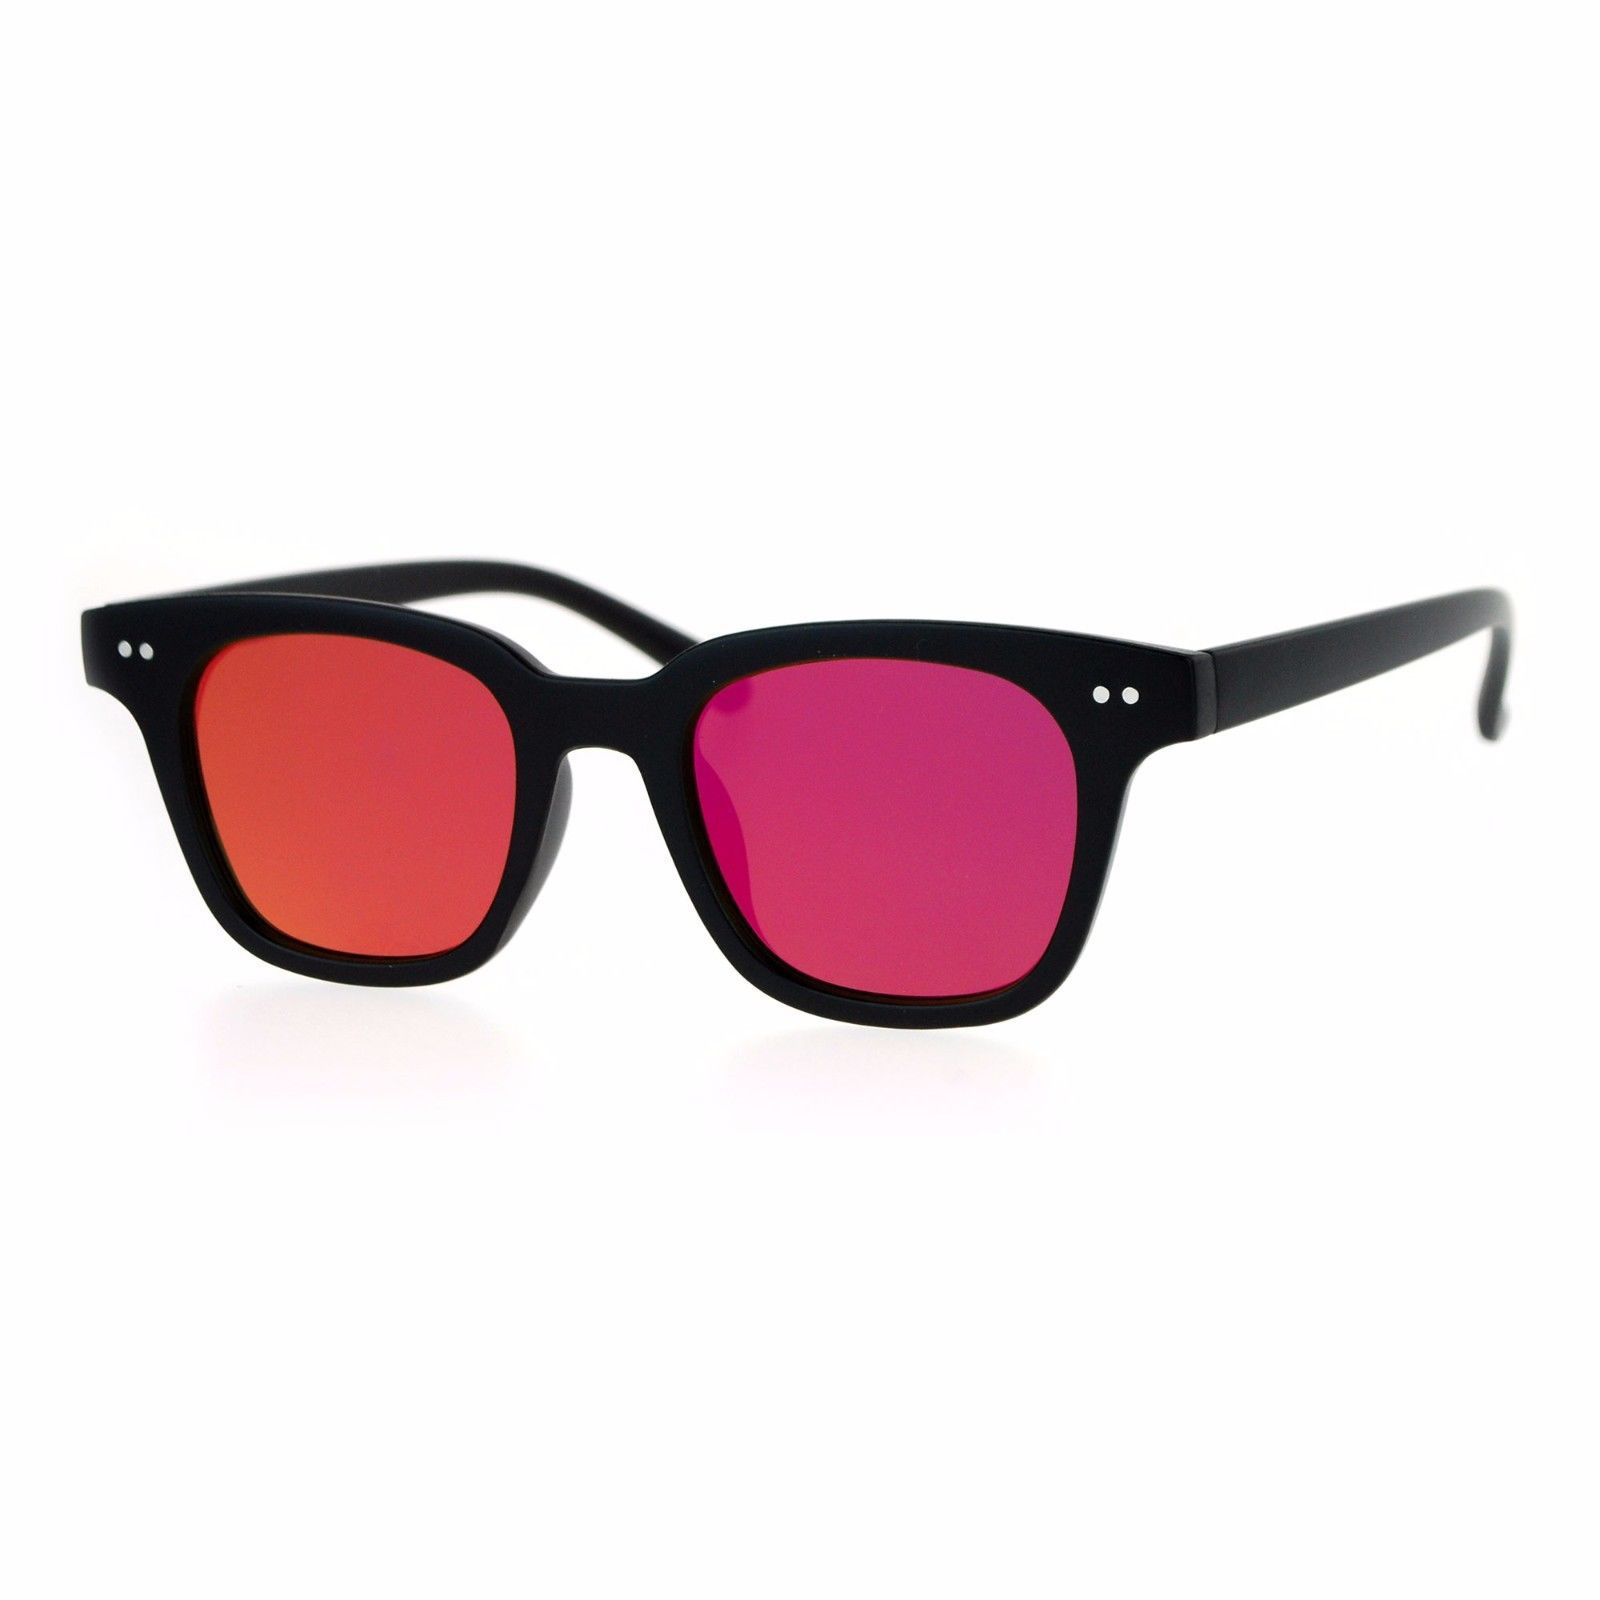 cacfef075a 57. 57. Mirrored Flat Lens Sunglasses Square Horn Rimmed Retro Trendy  Shades UV400. Mirrored Flat Lens Sunglasses ...